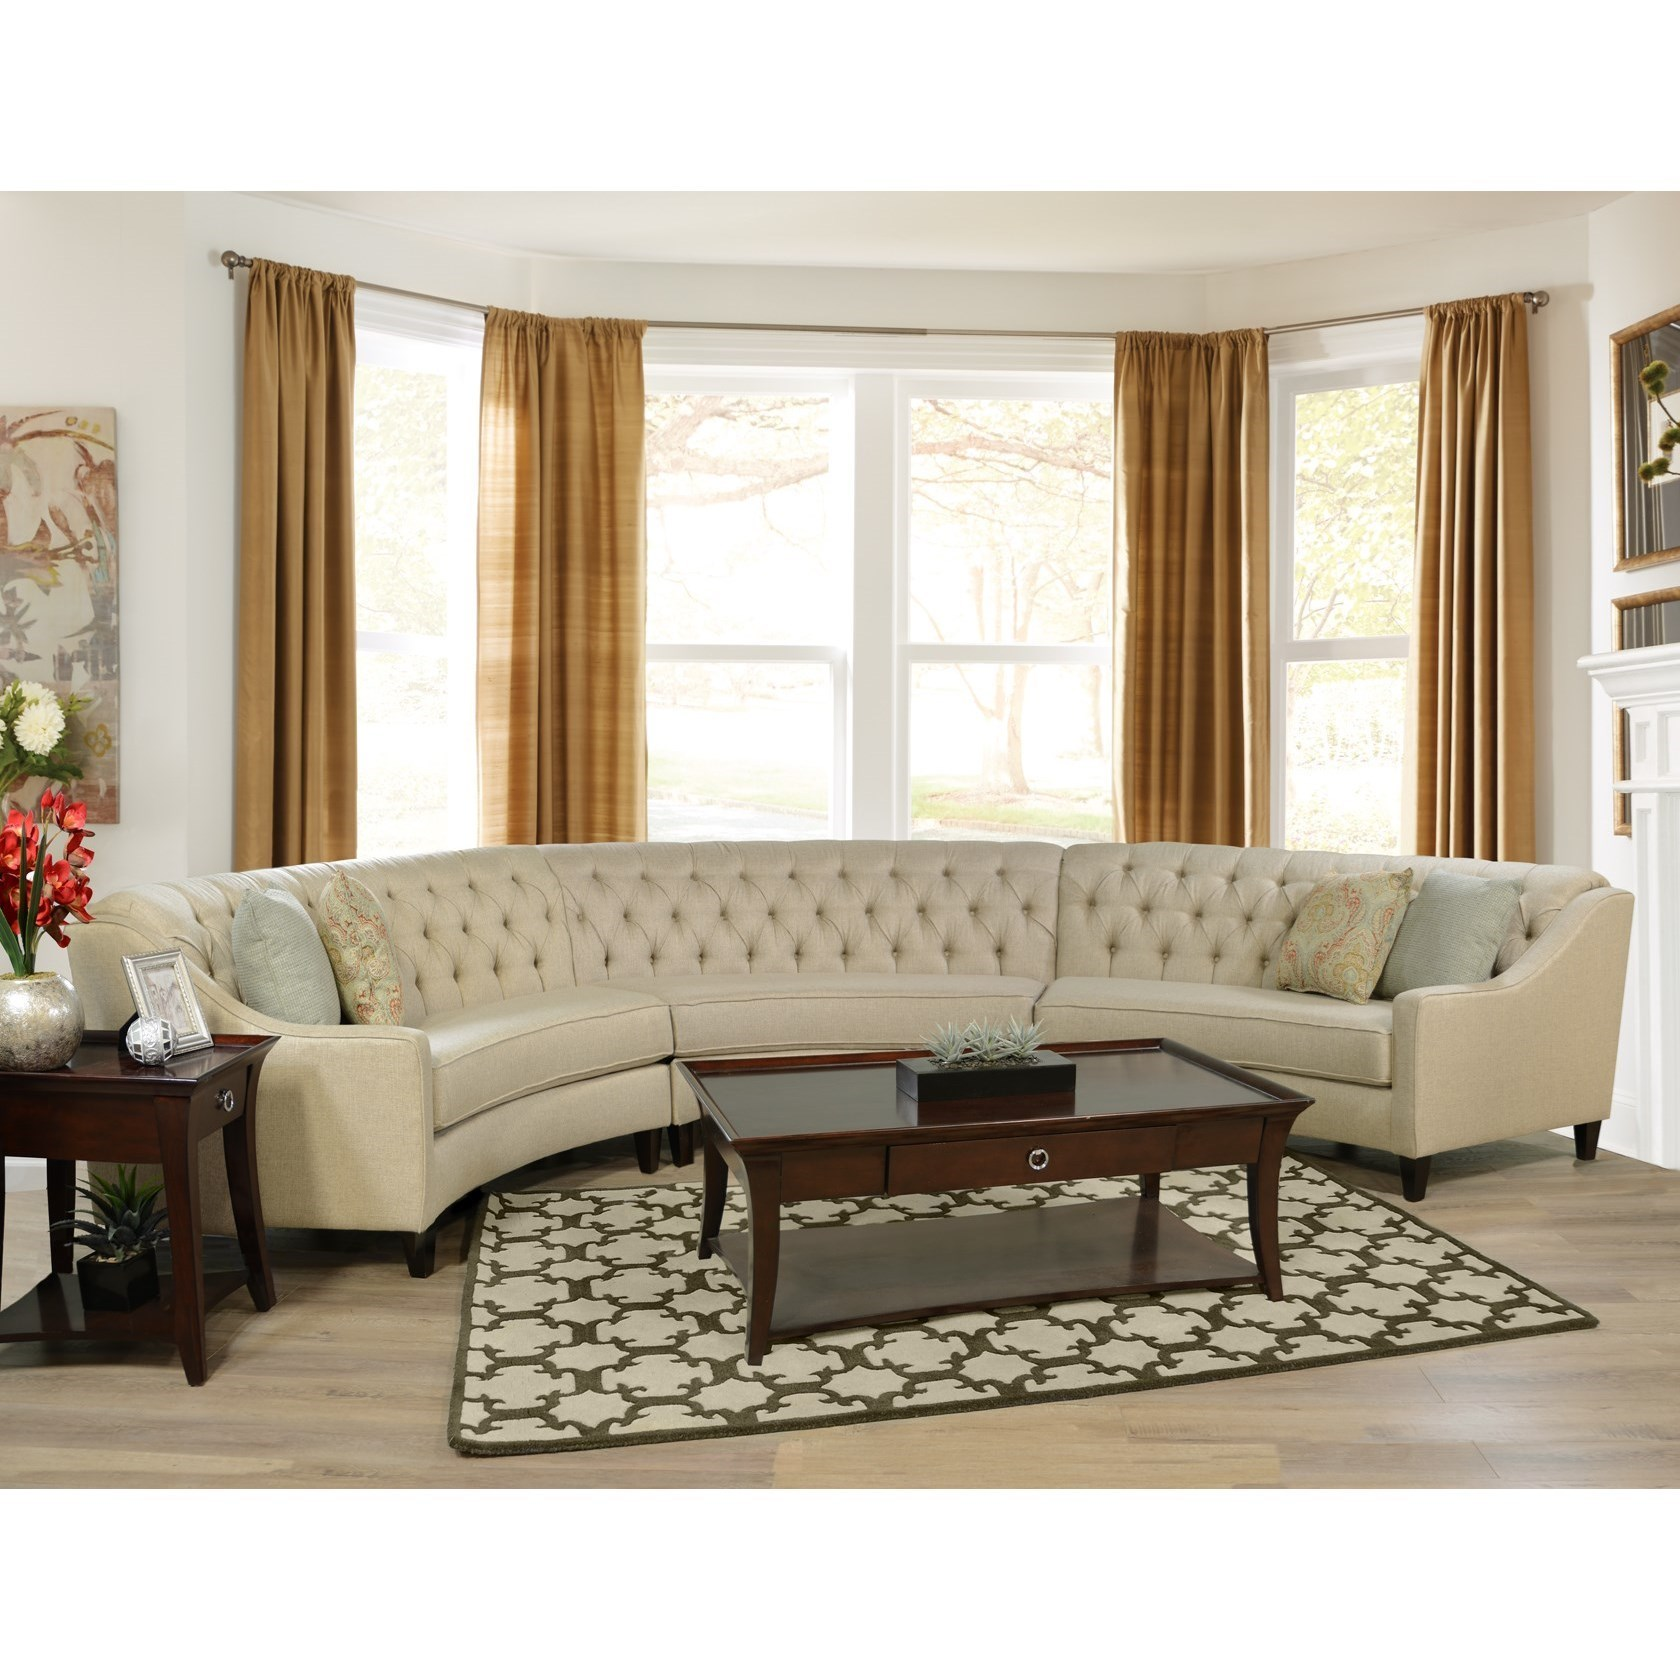 England Finneran 3 Piece Curved Sectional Sofa  sc 1 st  Boulevard Home Furnishings : curved sectional sofas - Sectionals, Sofas & Couches